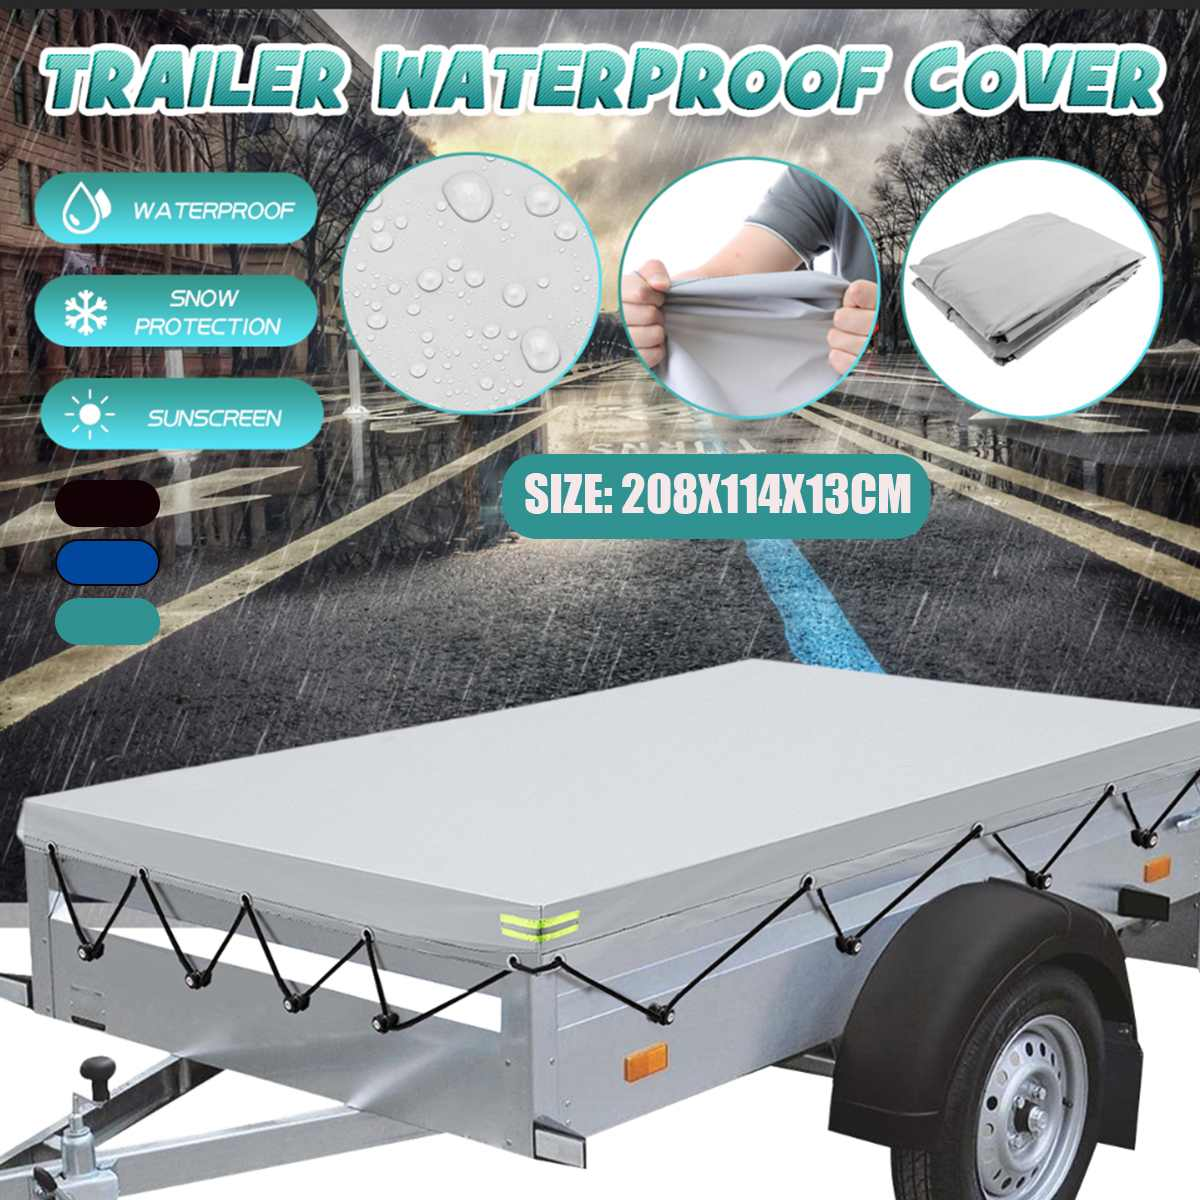 208x114x13cm Trailer Cover Sunshade Outdoor Snow Protection Waterproof Dustproof Car Roof Tent Cover Canopy